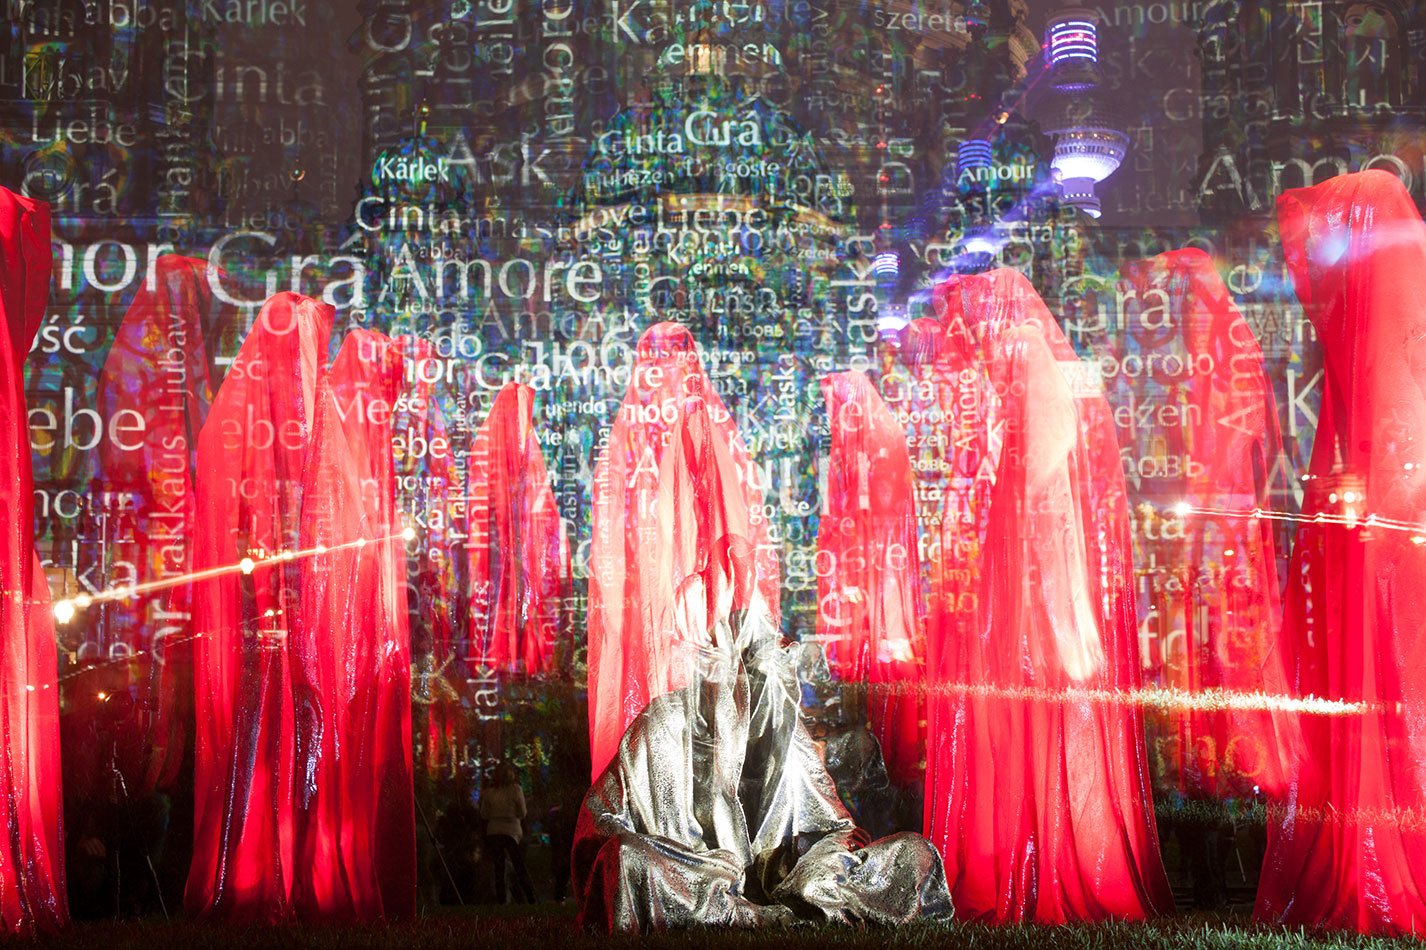 festival-of-lights-old-museum-cathedral-berlin-light-art-show-exhibition-lumina-guardians-of-time-manfred-kili-kielnhofer-contemporary-arts-design-sculpture-3050